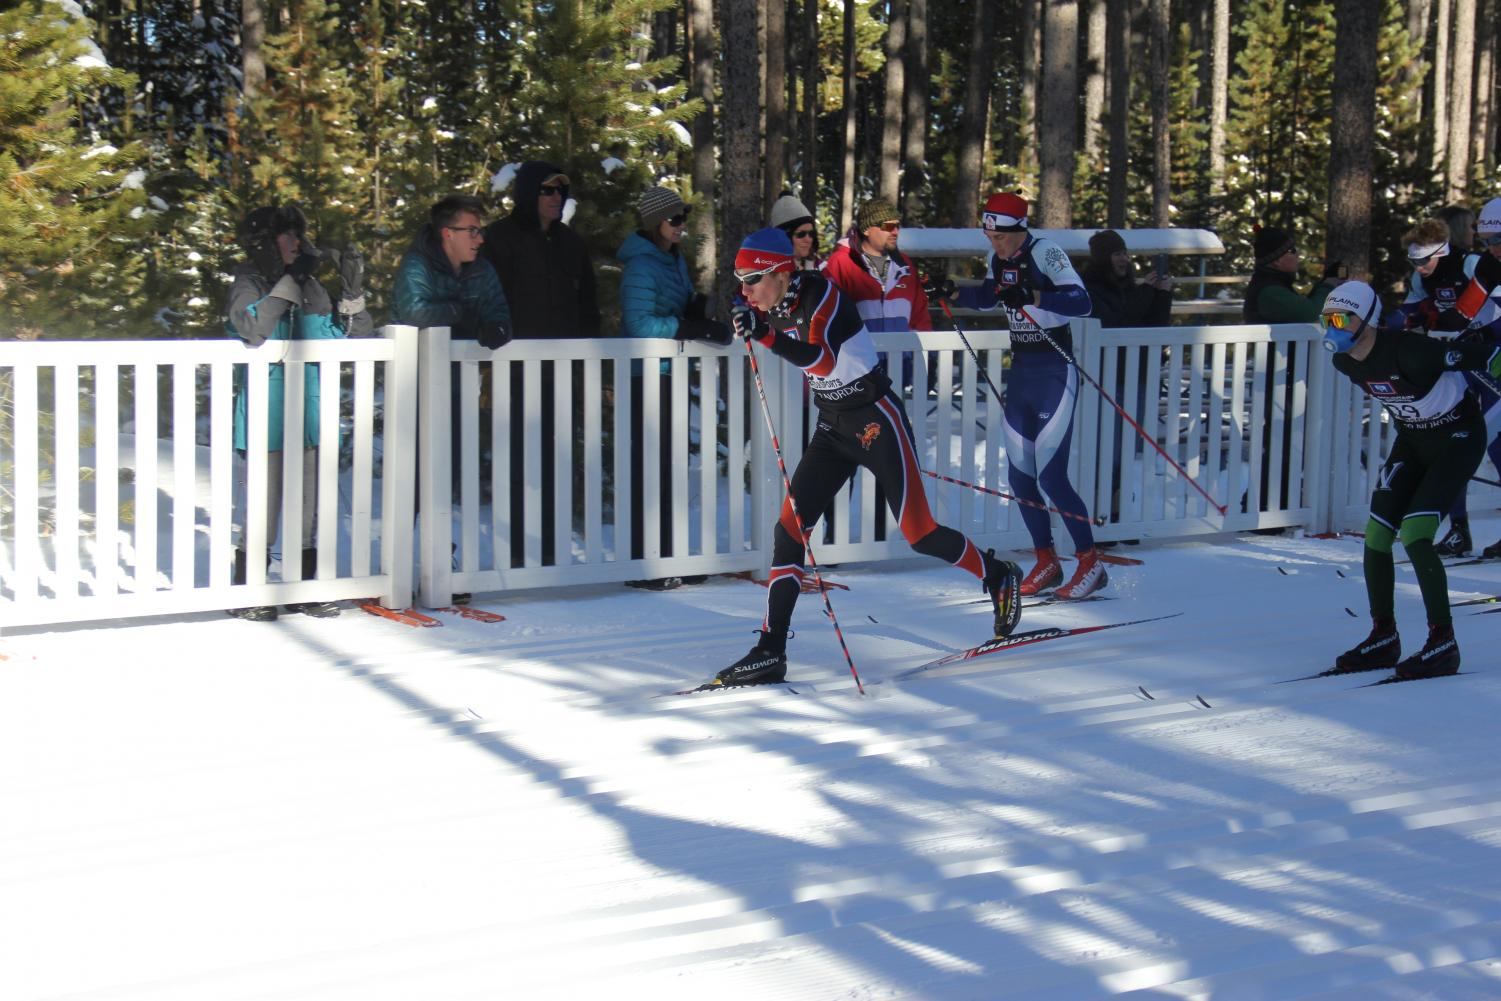 NC Mustang Ben Radosevich pulls away from the rest of the Varsity boys during the first nordic ski meet of the season. The meet took place on December eighth on Casper Mountain. Radosevich went on to comfortably win the race by 43 seconds.